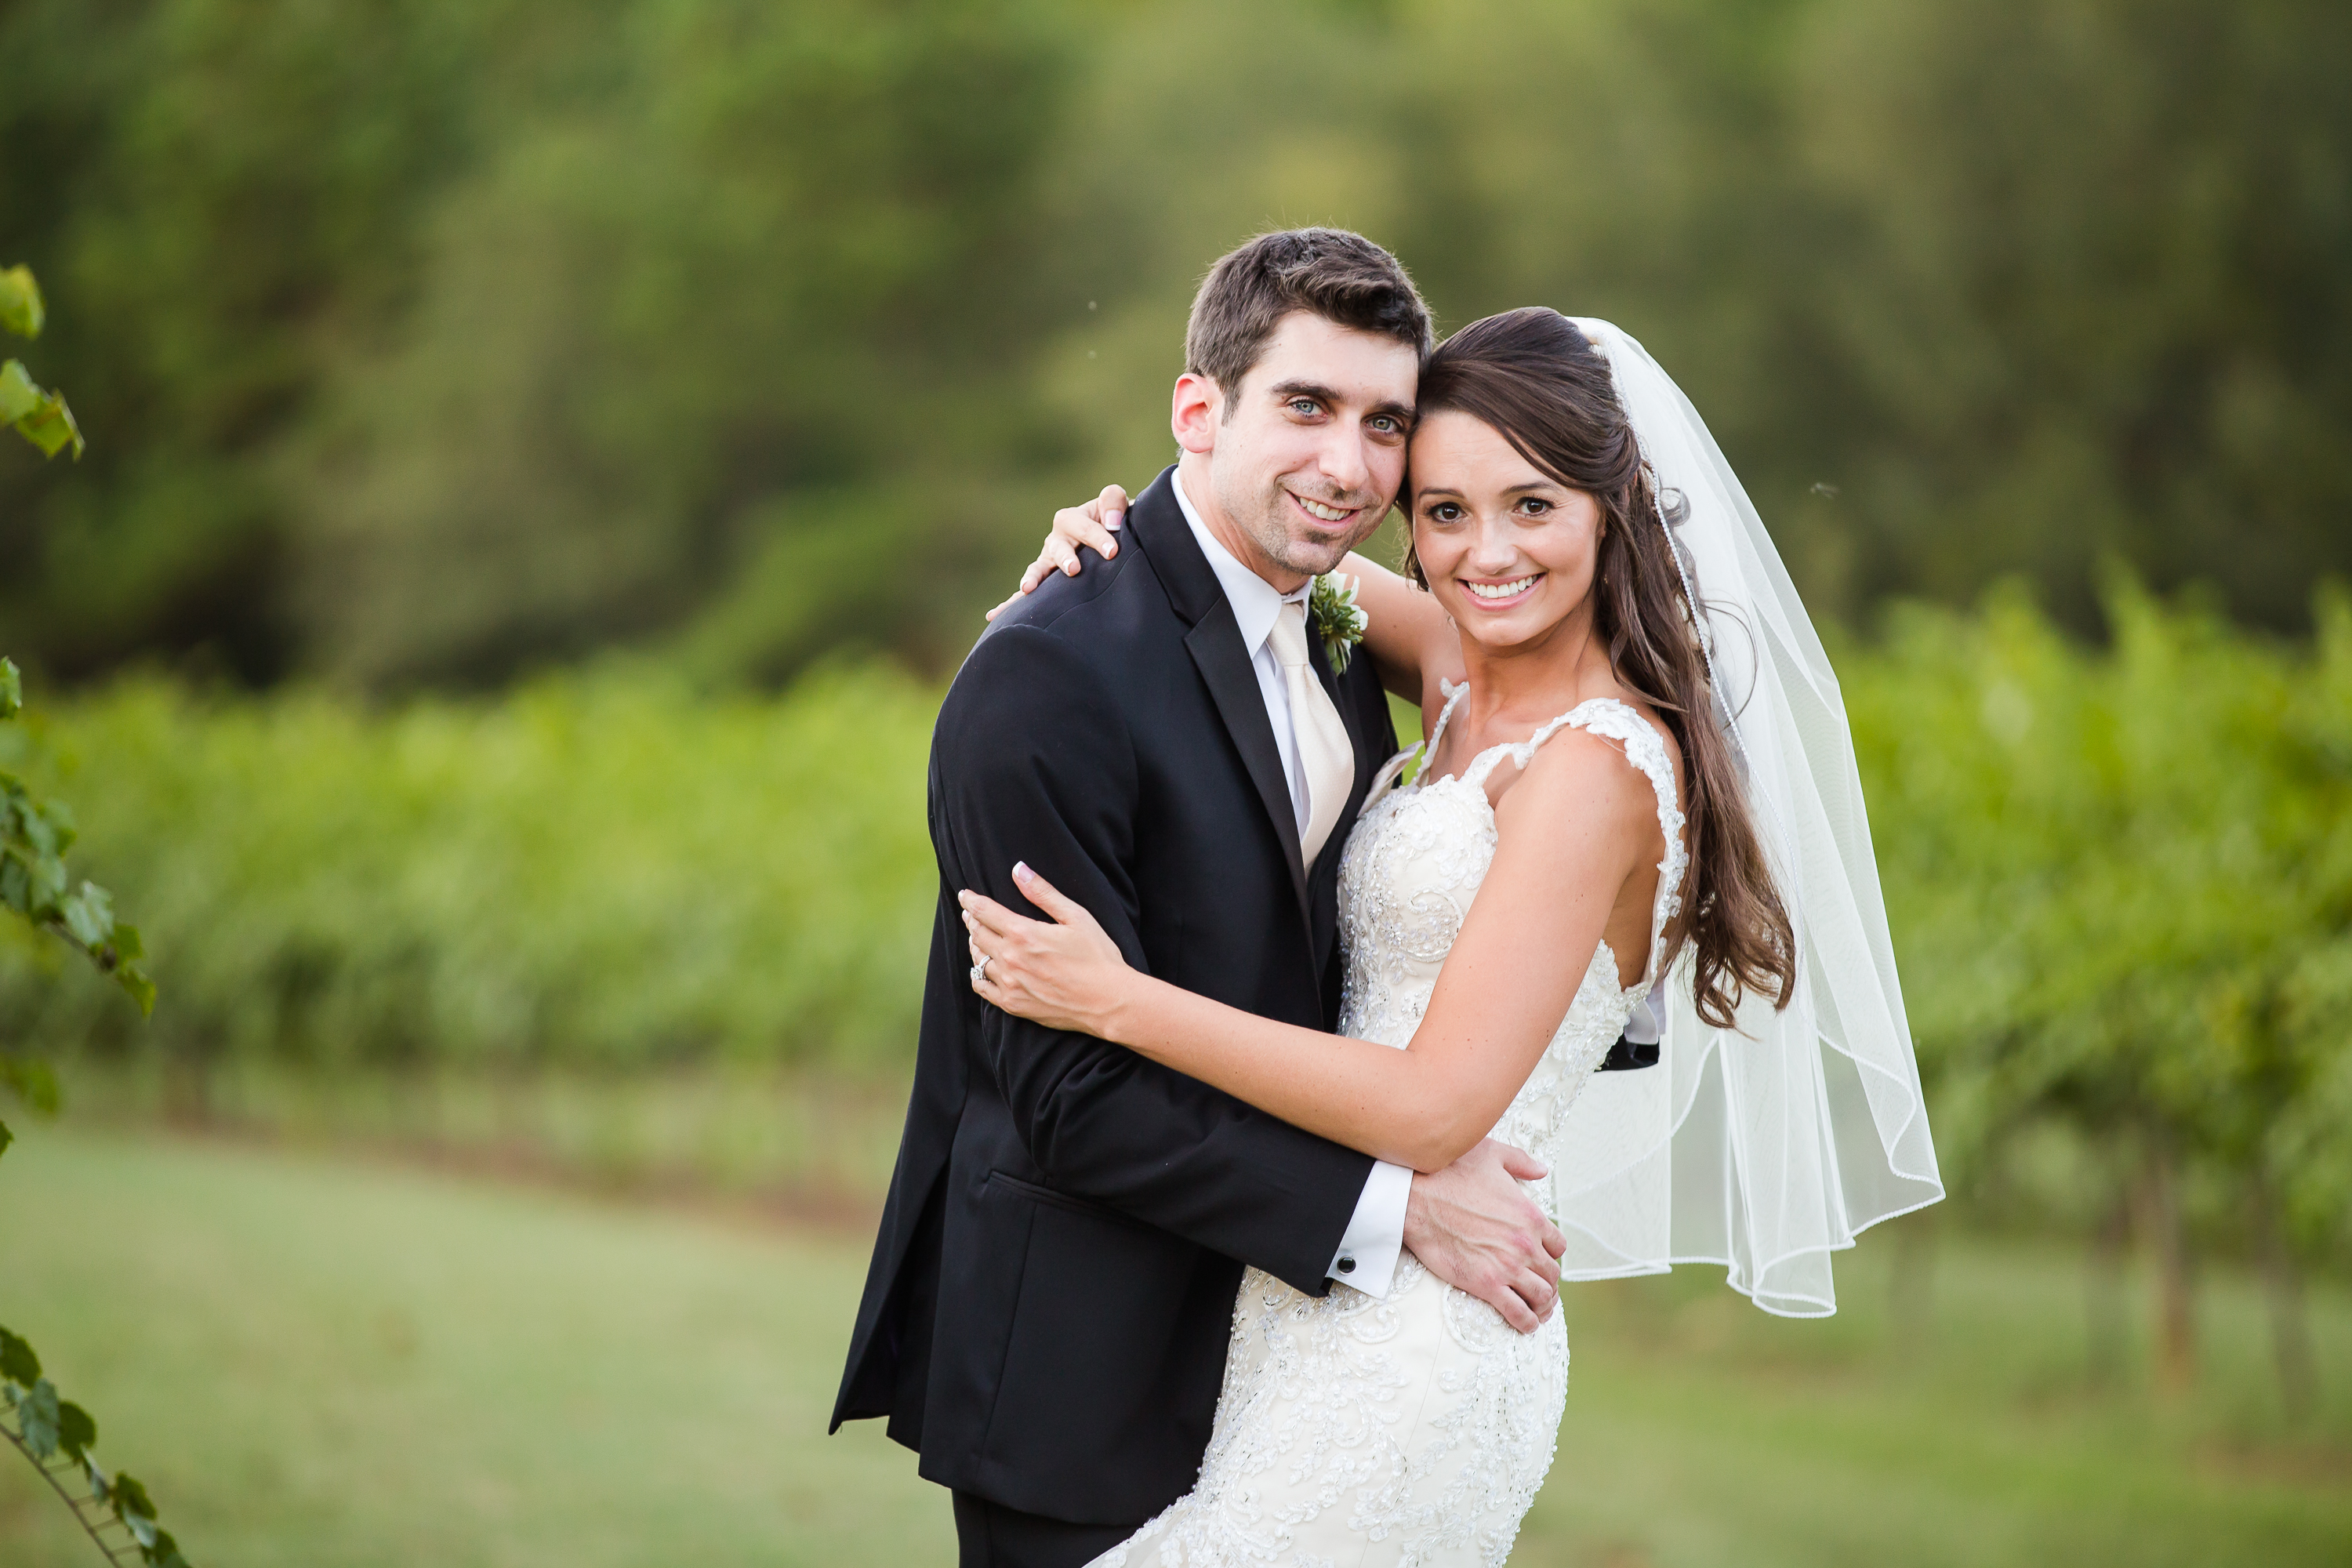 claire-diana-photography-farm-high-shoals-wedding-164